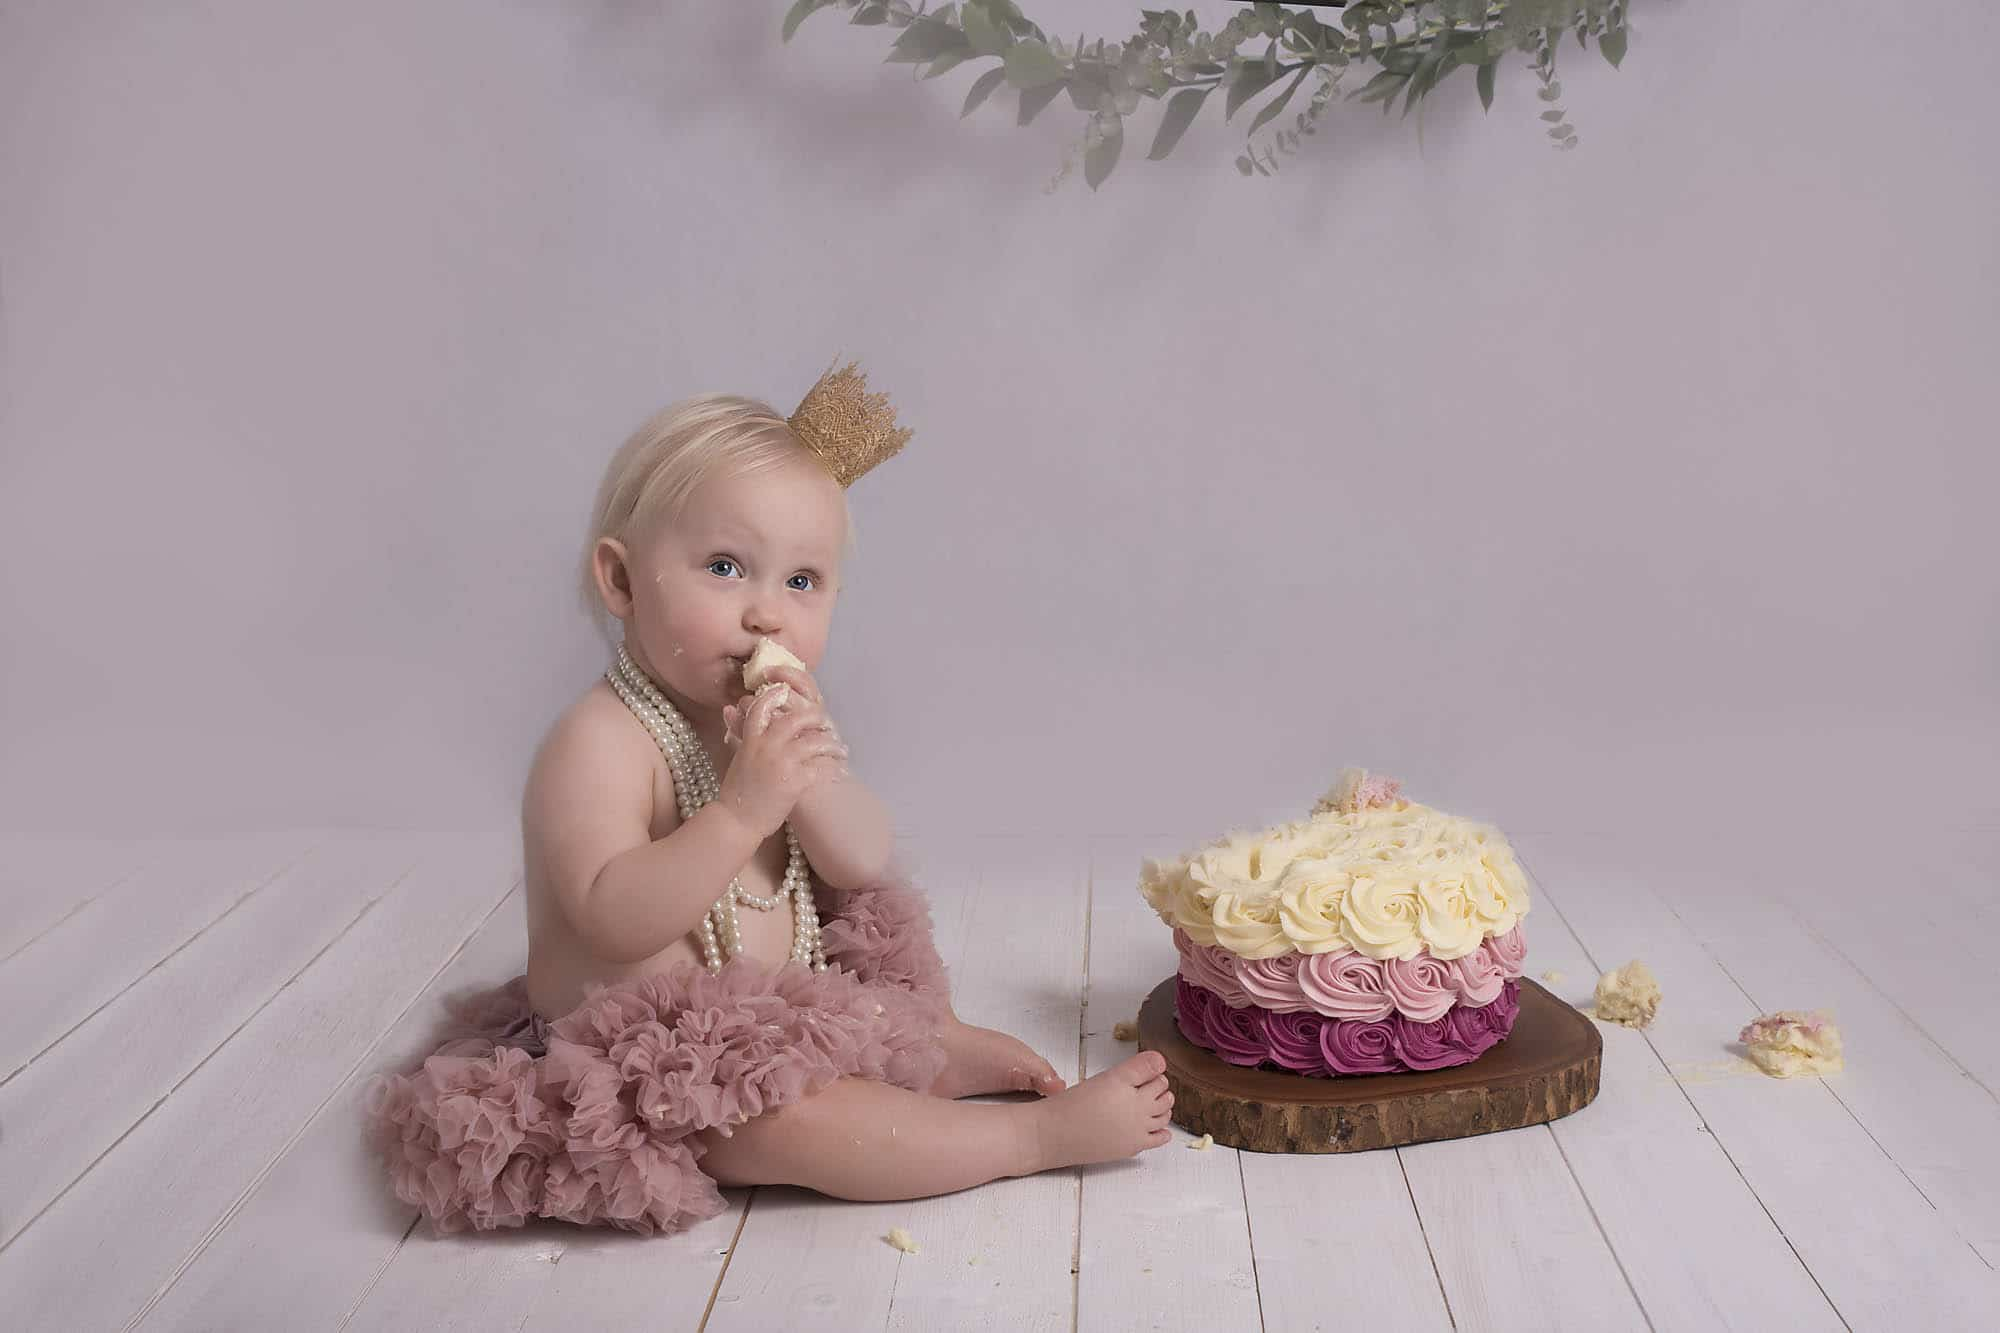 Cakesmash with little girl wearing a crown photographed by cake smash photography Manchester